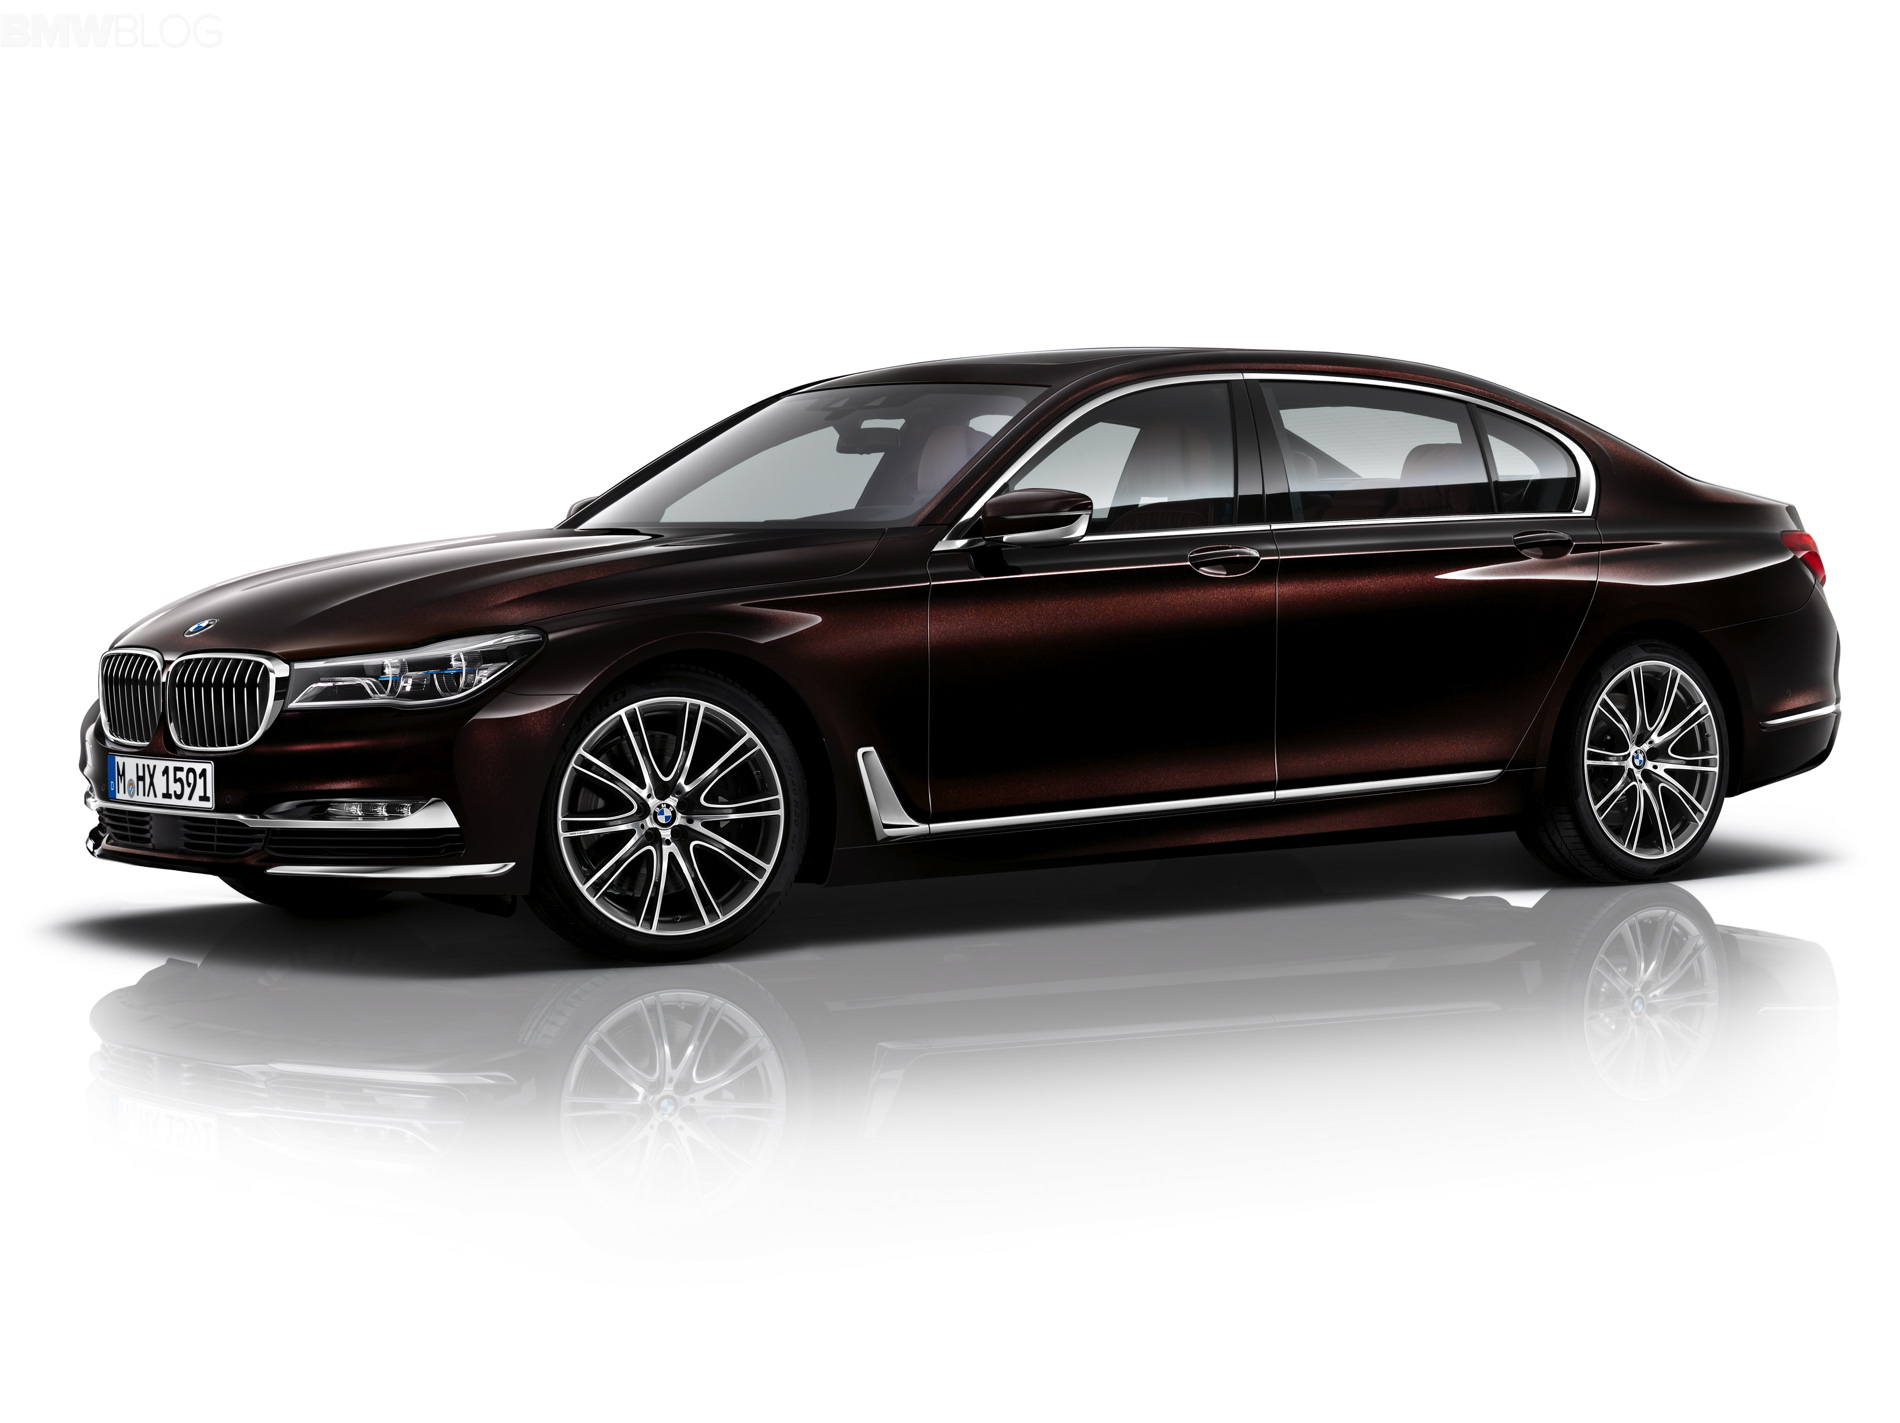 2016 Bmw 7 Series Individual In Almandine Brown Video